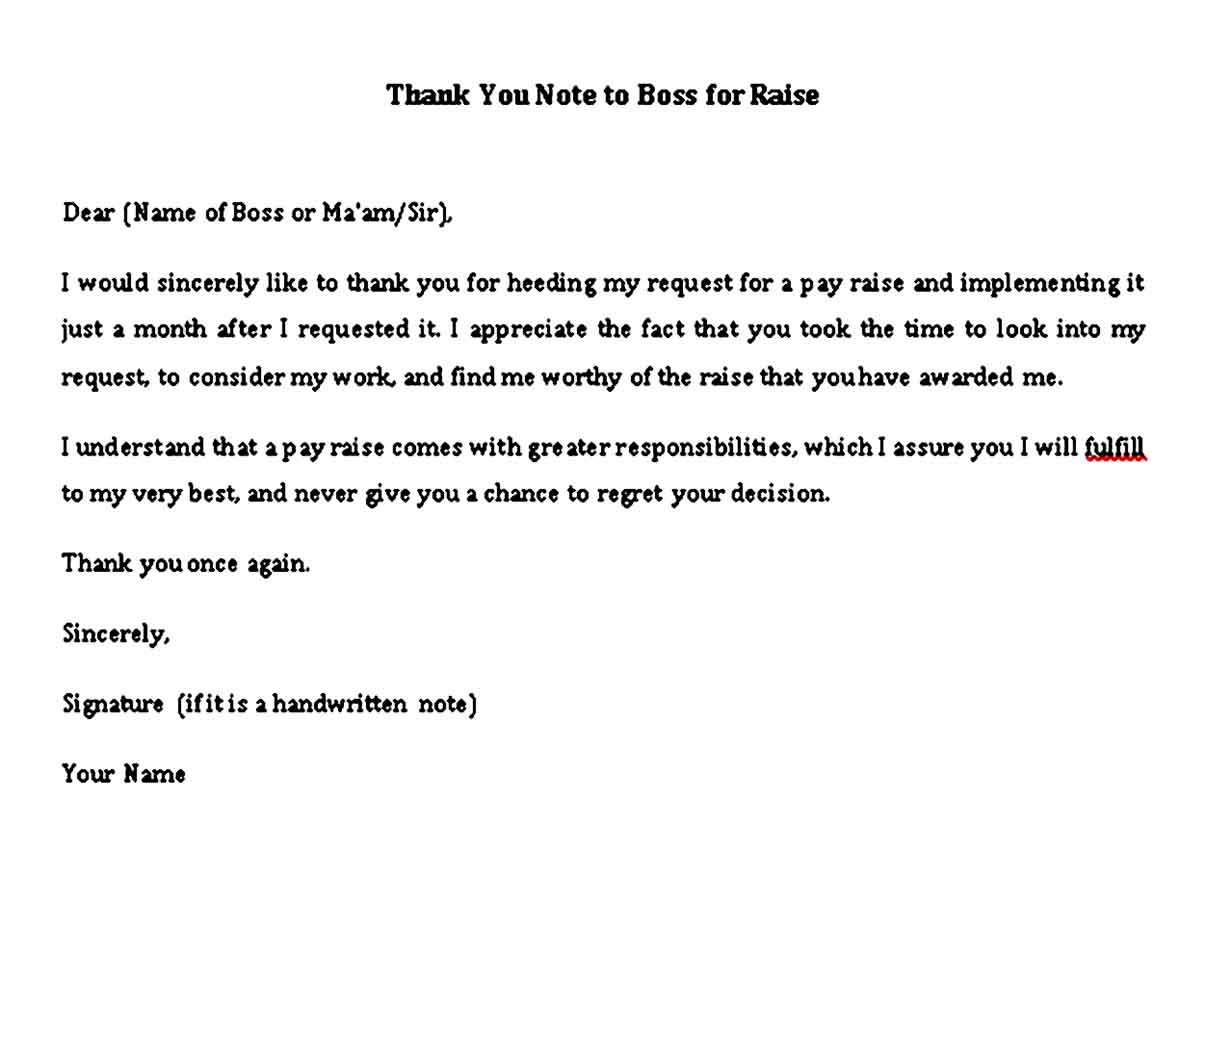 thank you note to boss for raise